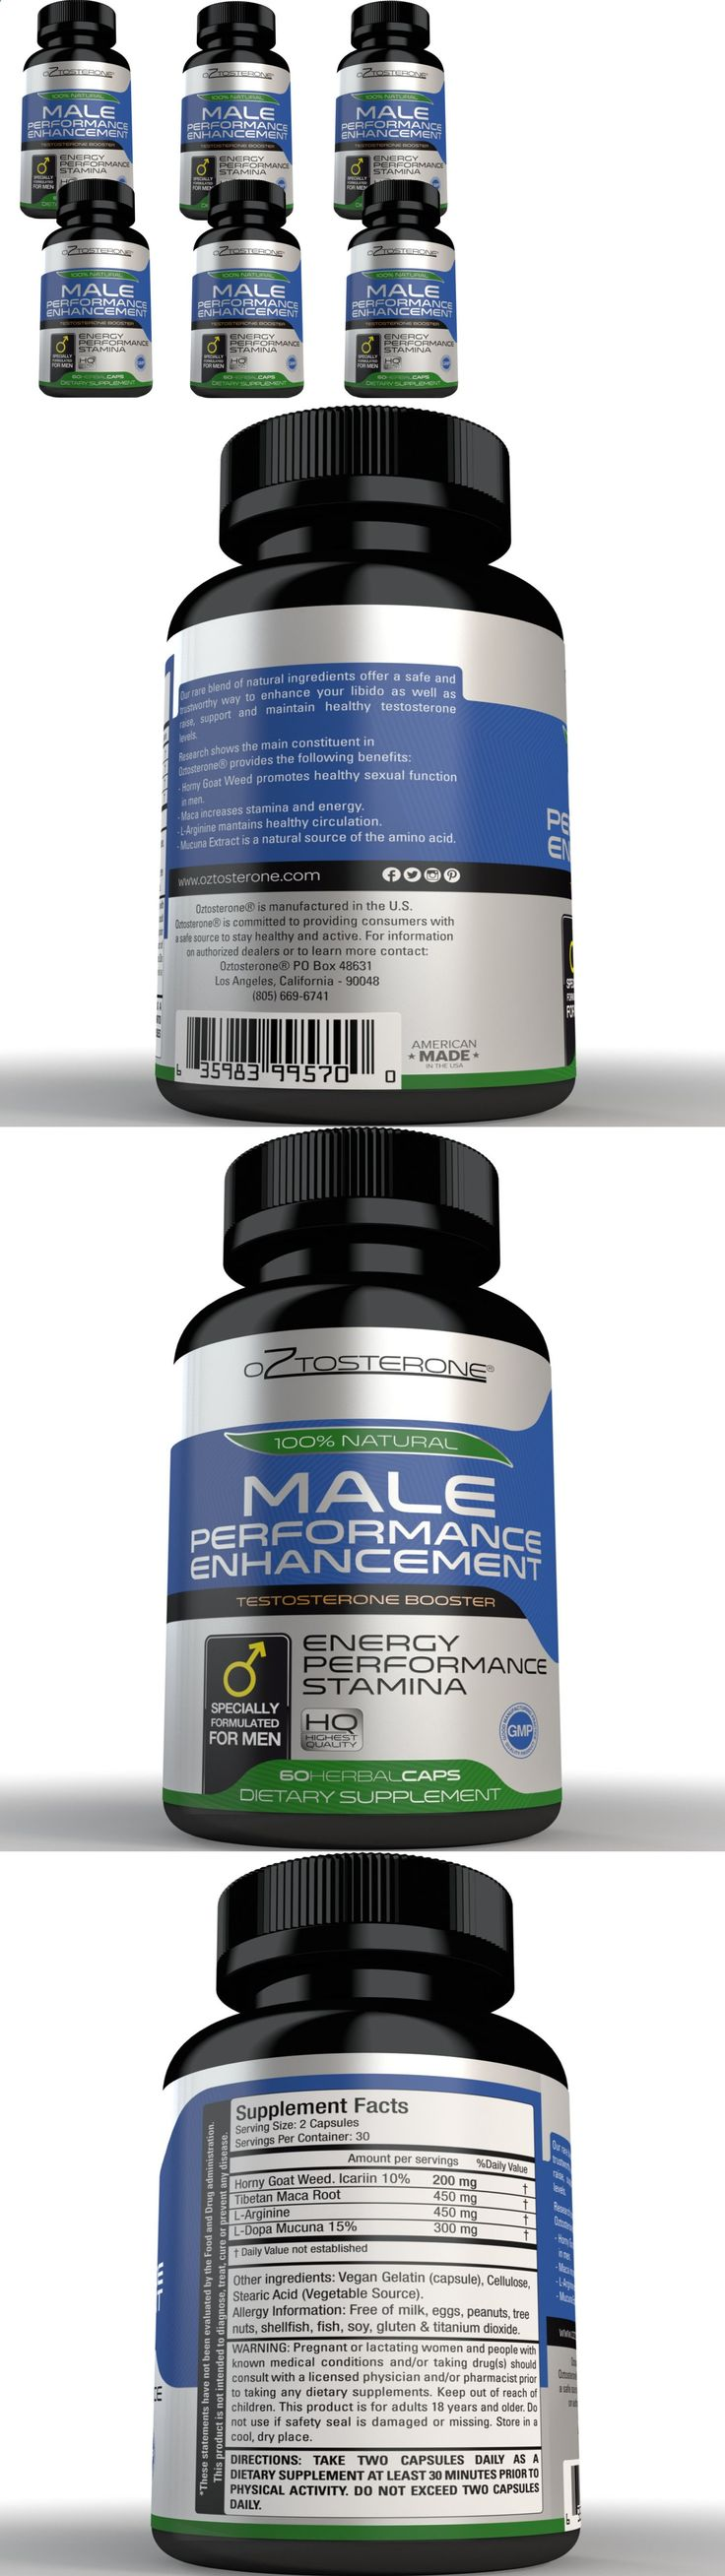 Sexual Remedies and Supplements: 6 Oztosterone Male Sexual Performance Enhancement - Testosterone Booster For Men BUY IT NOW ONLY: $42.0